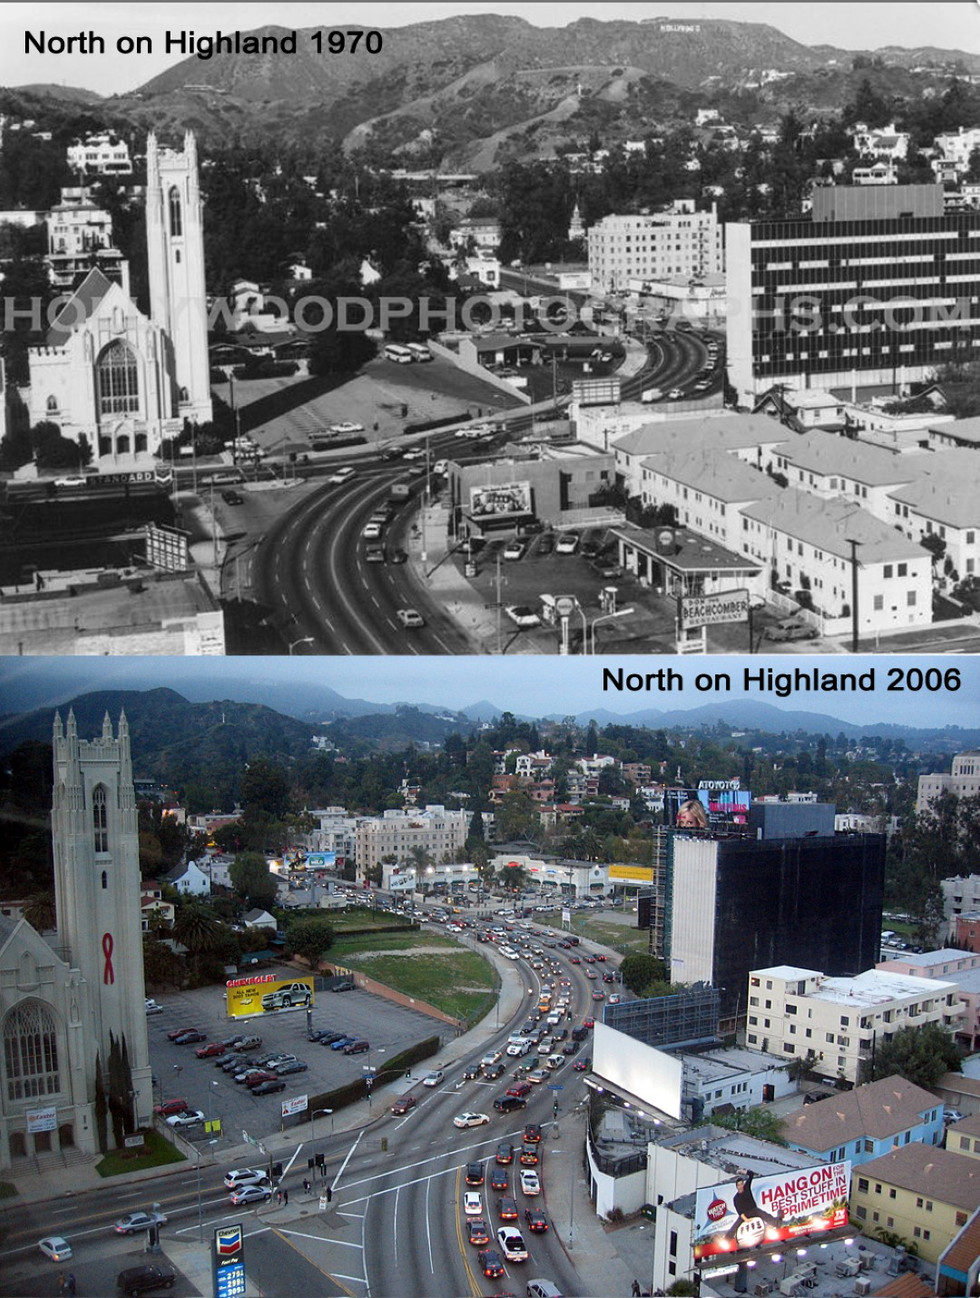 North on Highland 1970 & 2006